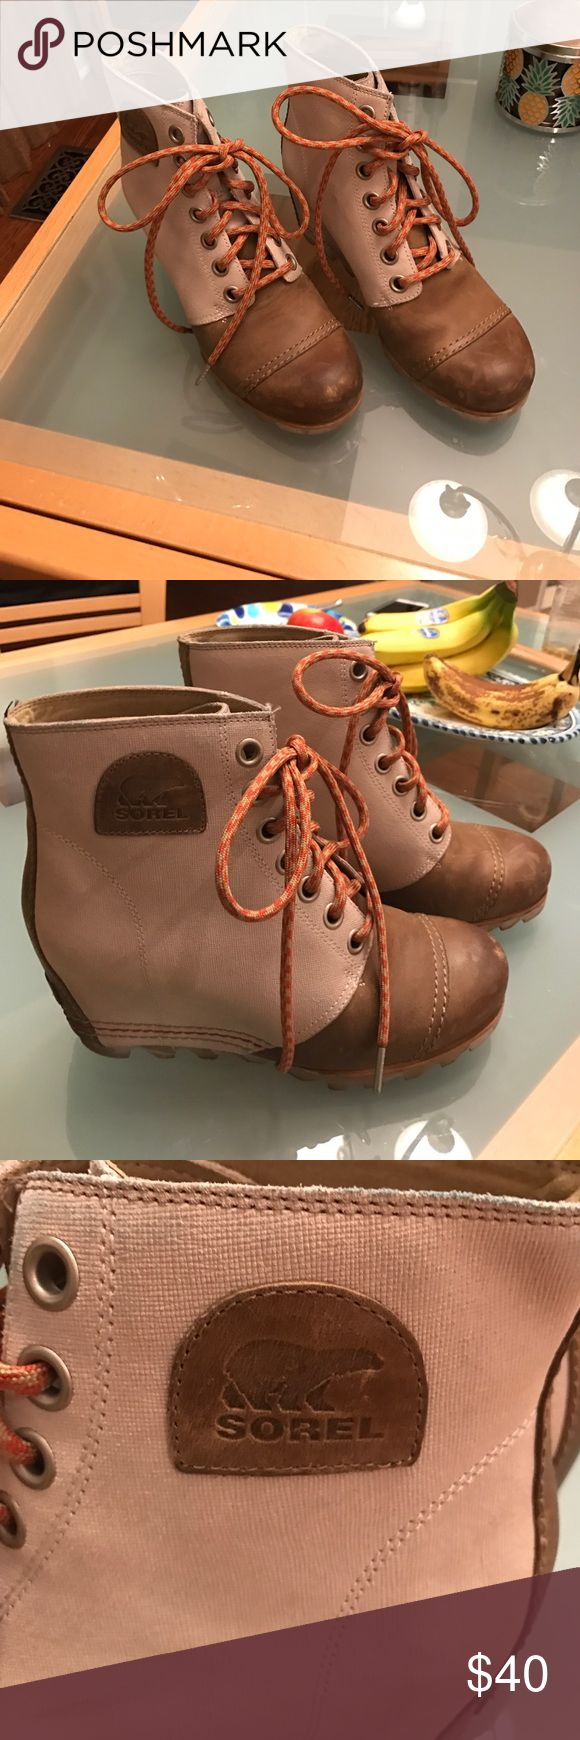 Sorel wedge boots, gently worn, size 8.5 Tan canvas/leather combo, sole is camouflage, very comfortable and a nice shade to ease into the spring (possibly rainy )weather! Sorel Shoes Winter & Rain Boots